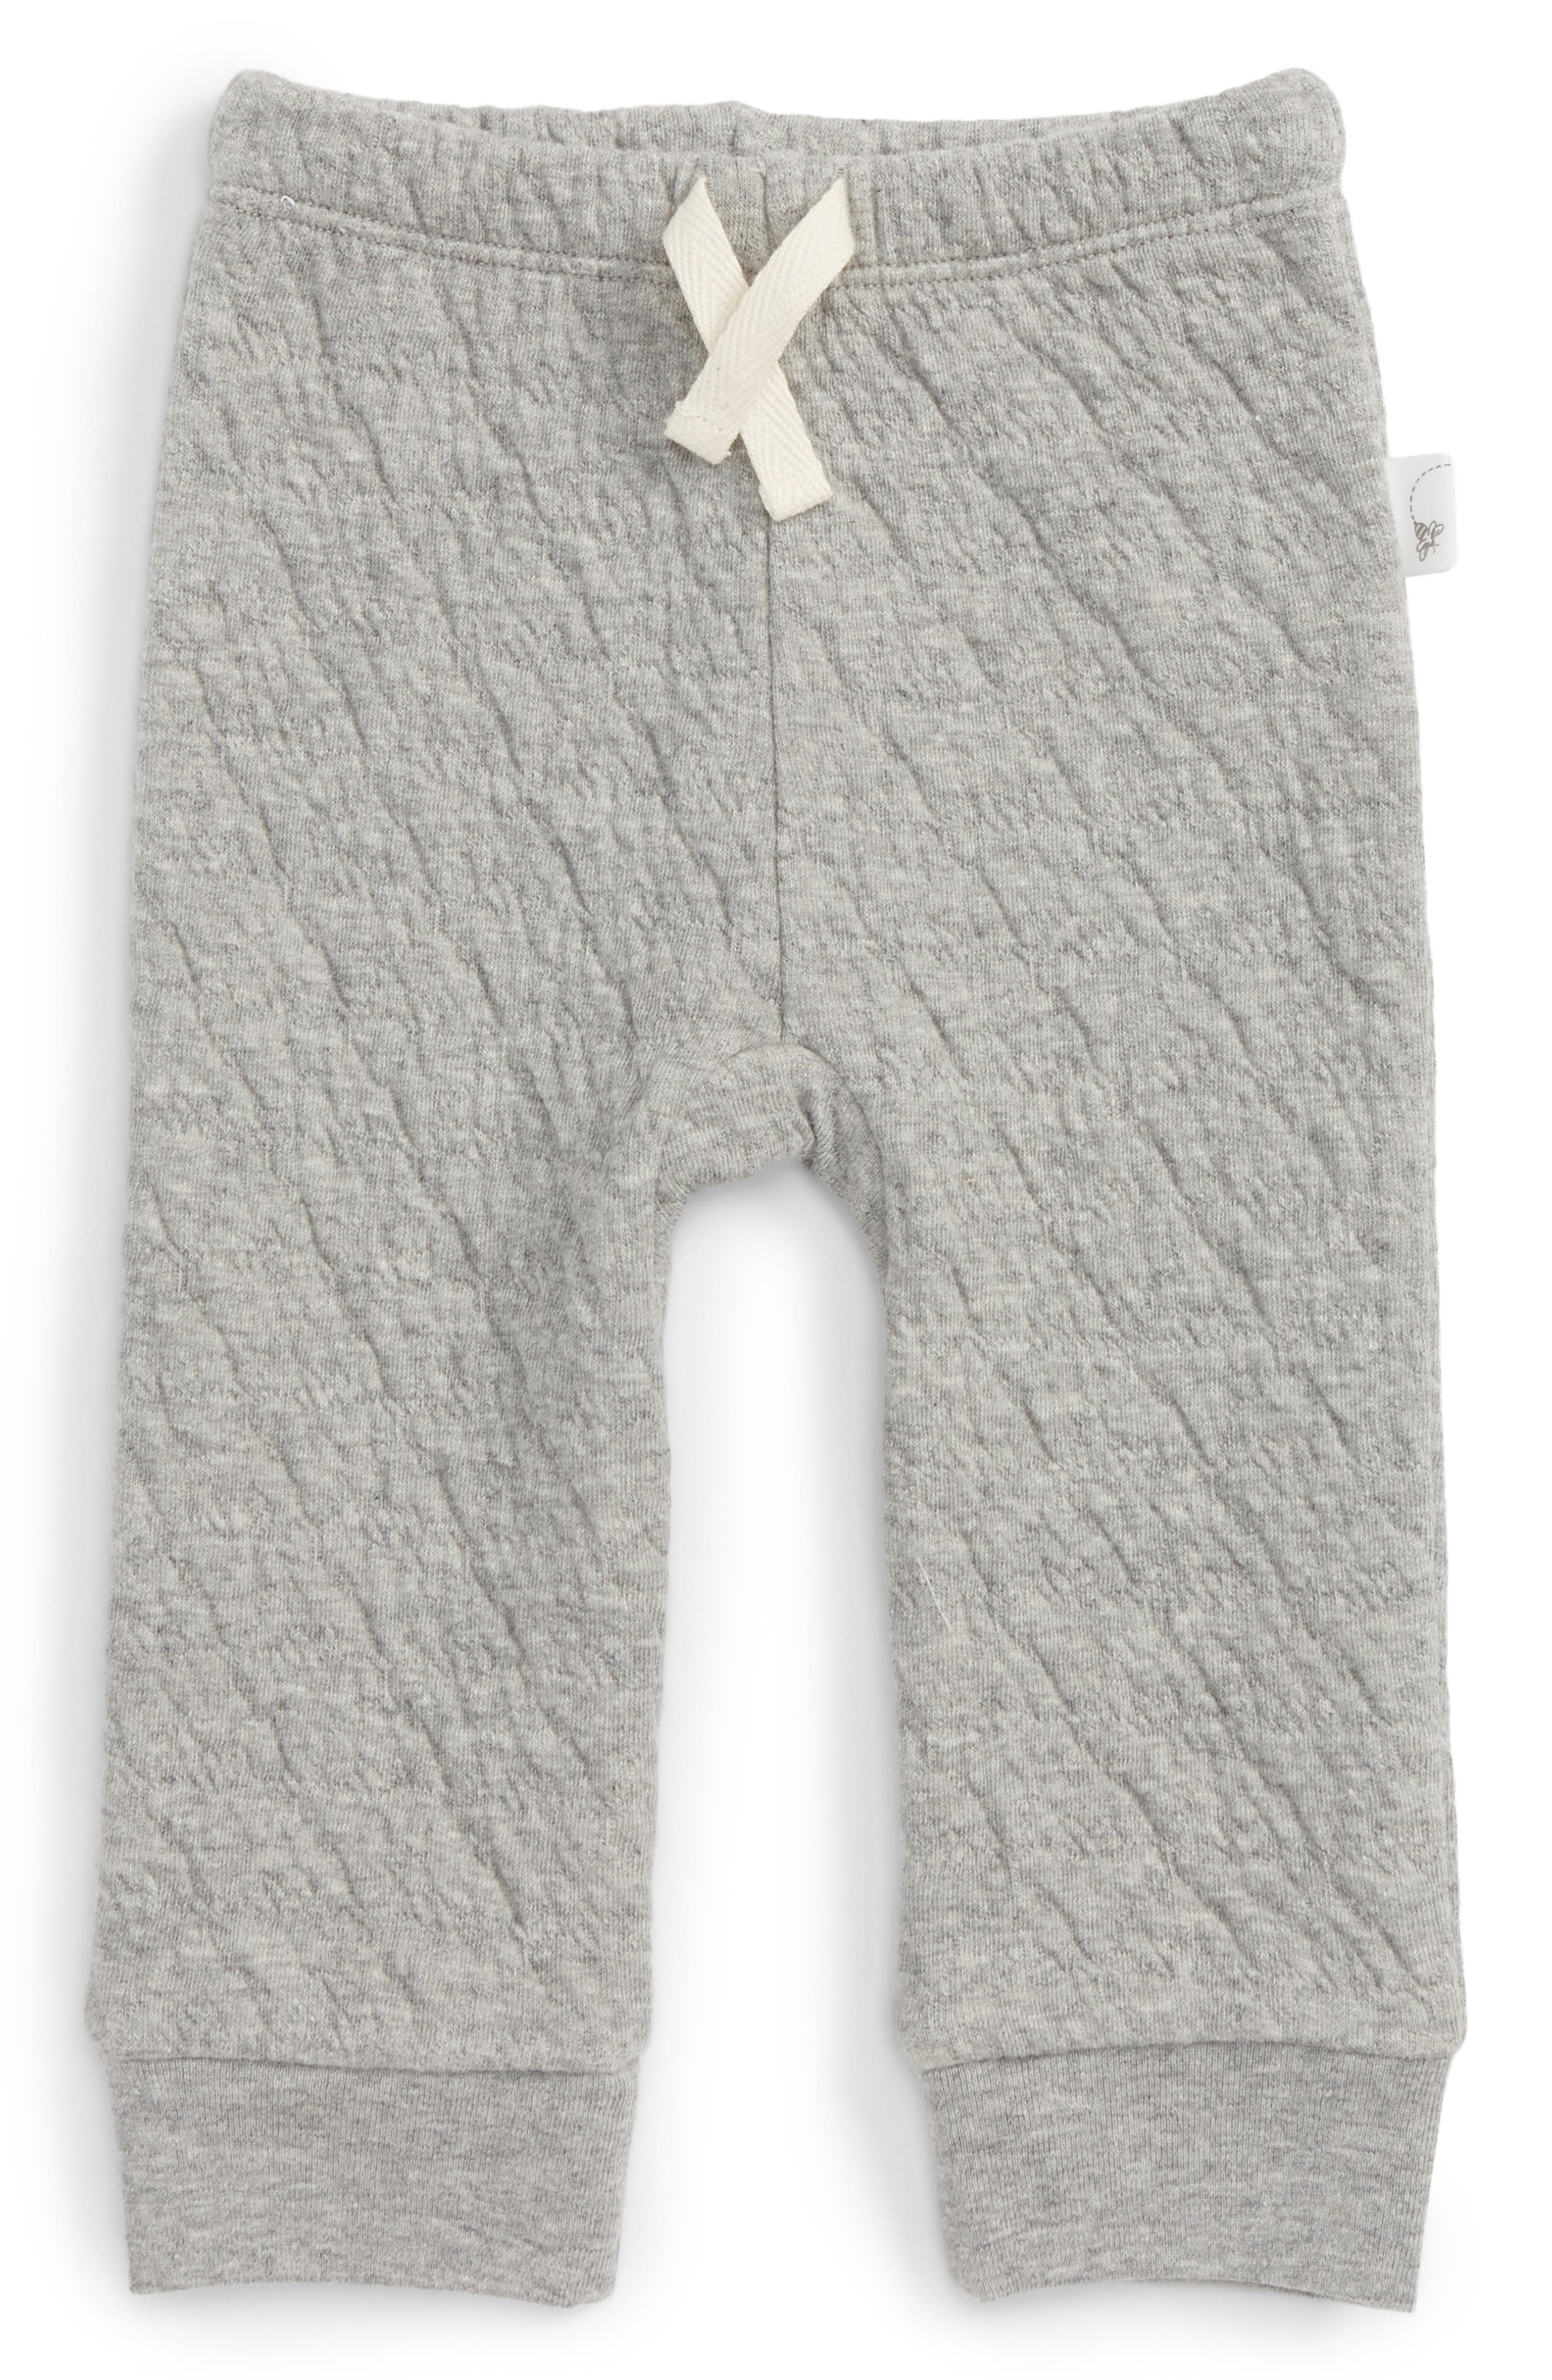 Burt's Bees Baby Quilted Organic Cotton Pants (Baby)